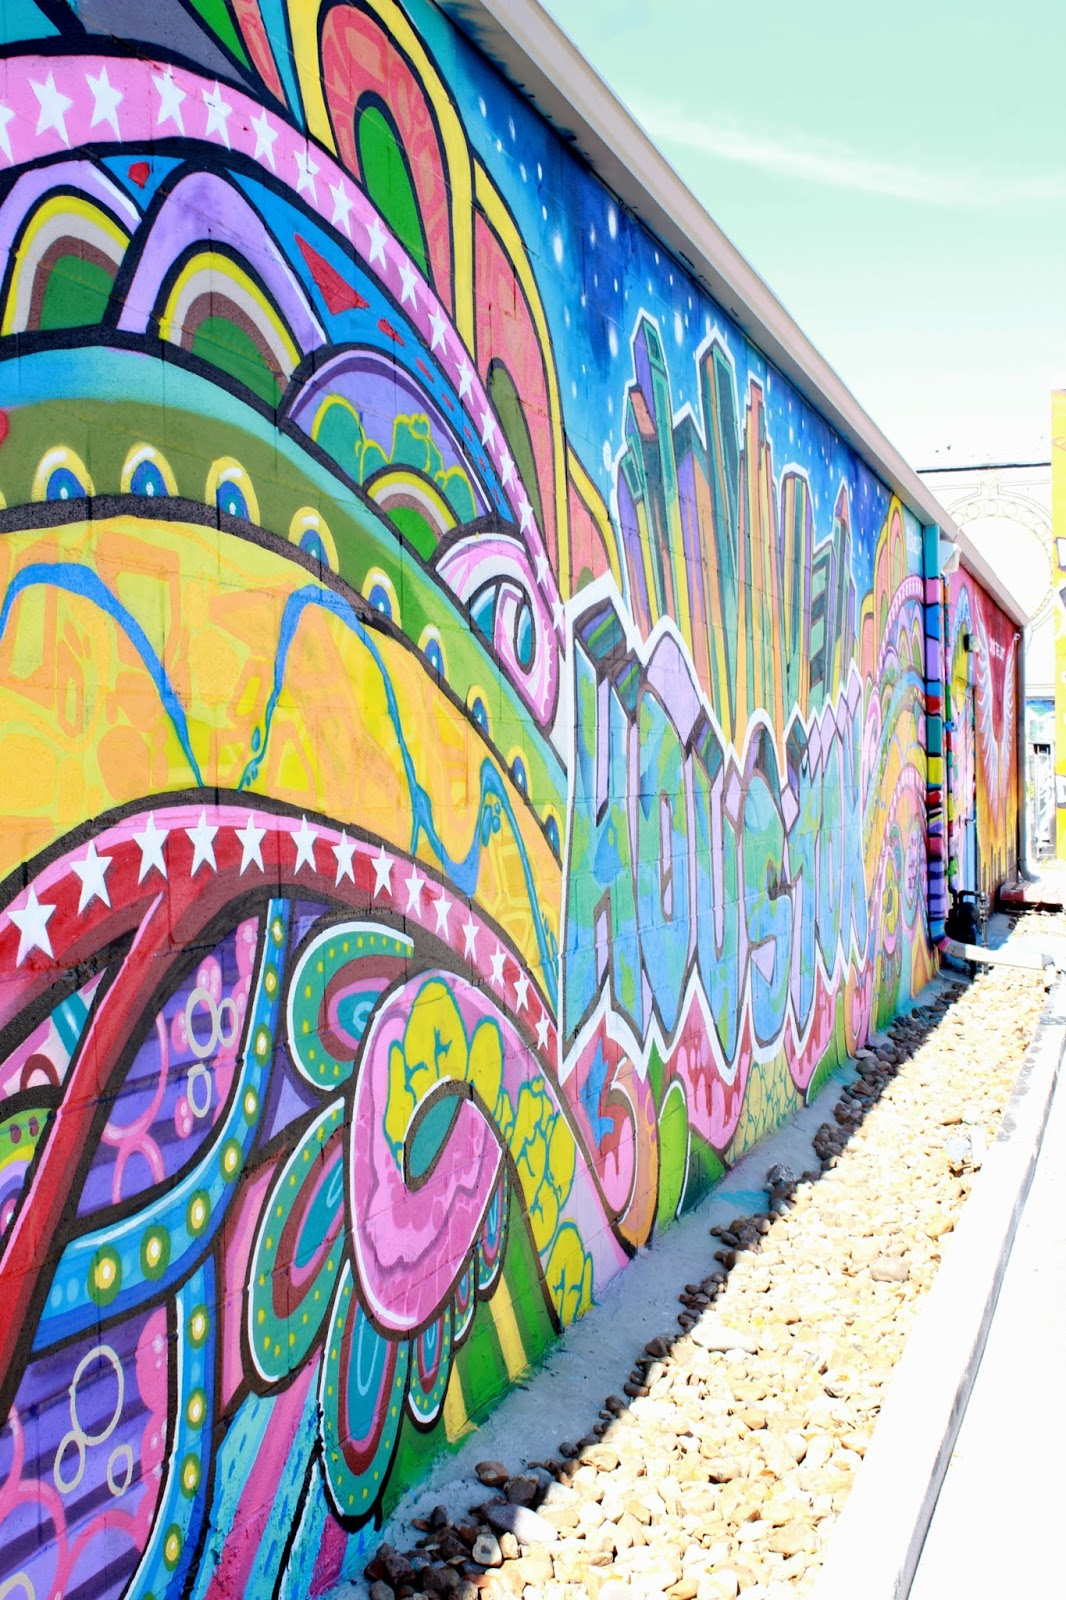 places i will go exploring houston murals of the city weekending houston mural style the wandering weekenders